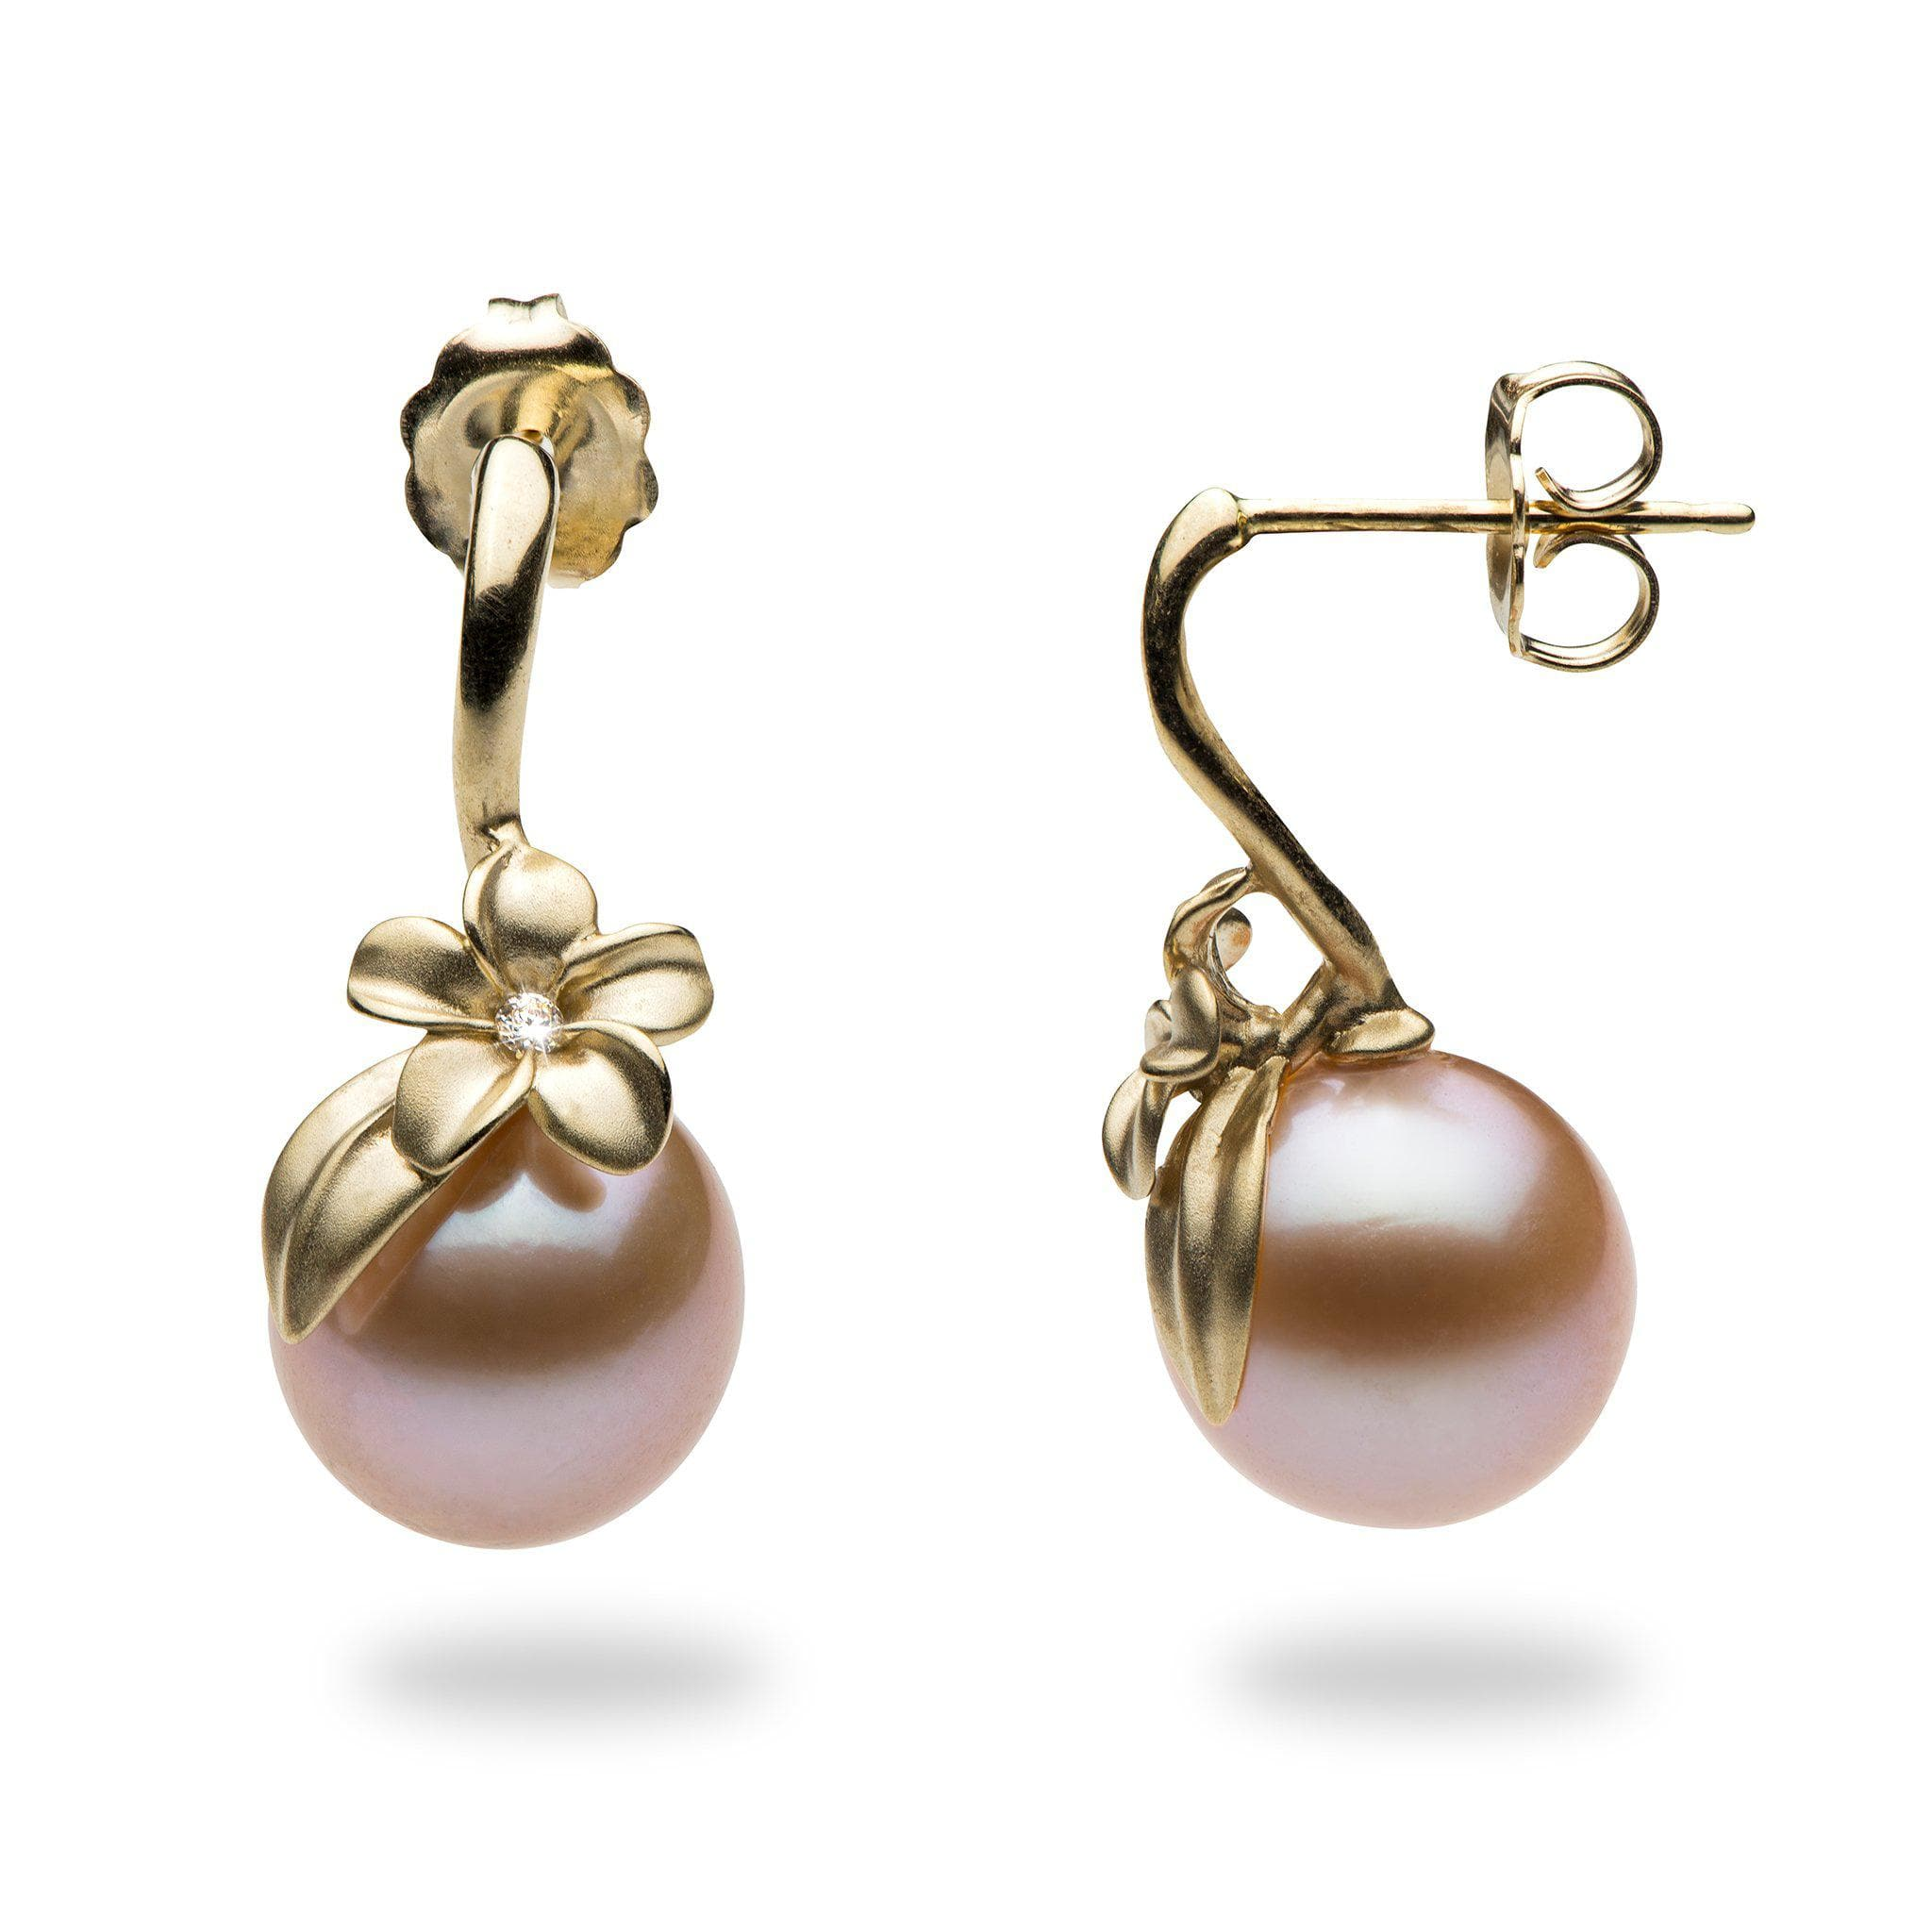 winterson earrings pearls drop gold leverbacks white diamond and pearl leverback yellow with freshwater